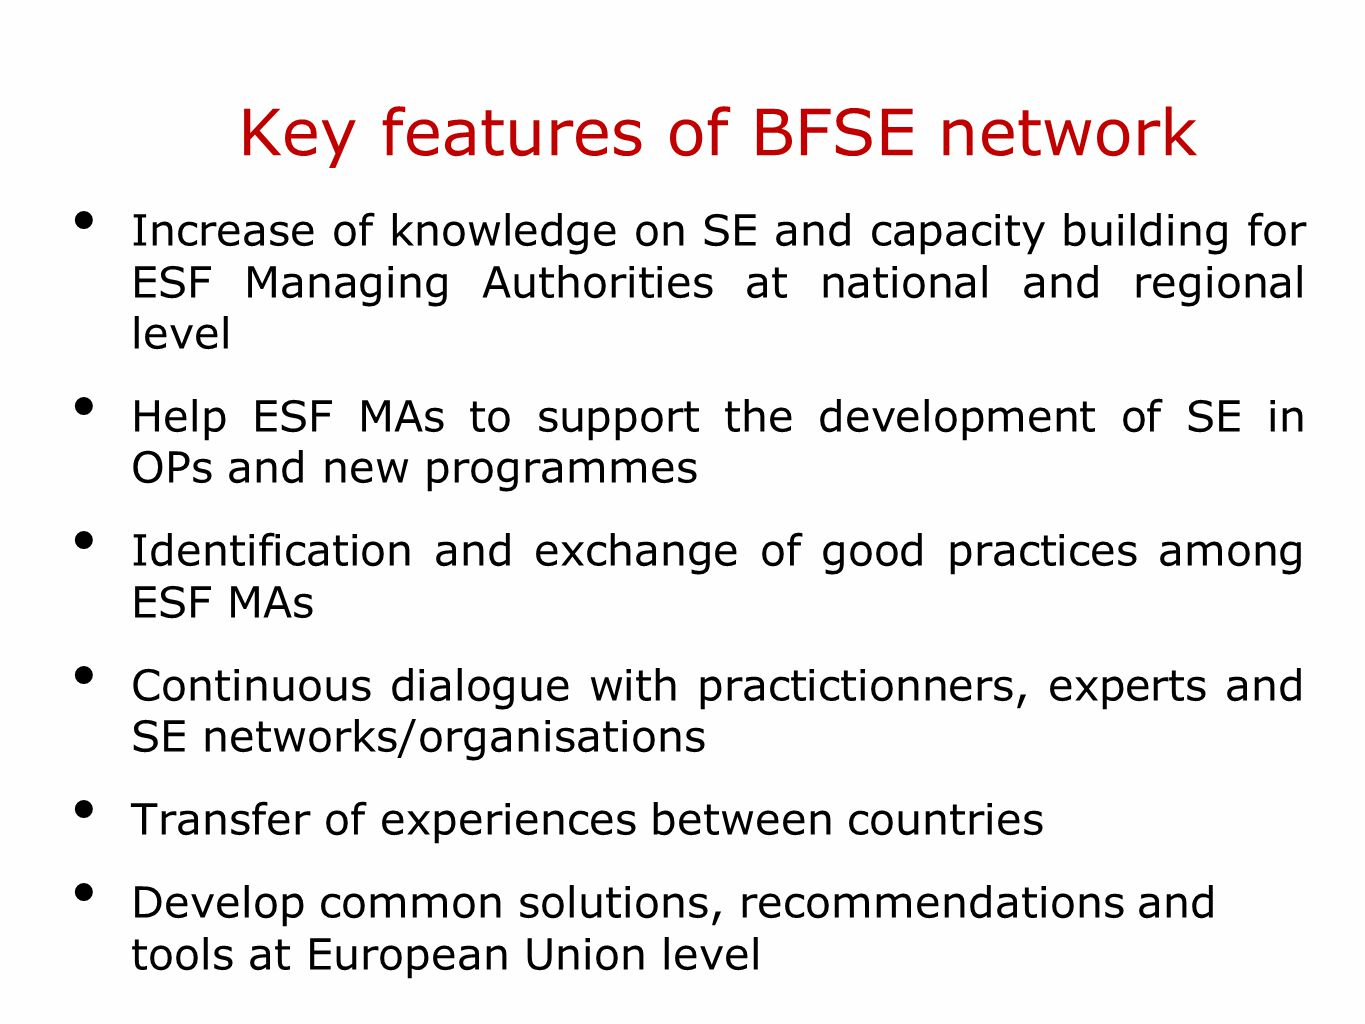 Key features of BFSE network Increase of knowledge on SE and capacity building for ESF Managing Authorities at national and regional level Help ESF MAs to support the development of SE in OPs and new programmes Identification and exchange of good practices among ESF MAs Continuous dialogue with practictionners, experts and SE networks/organisations Transfer of experiences between countries Develop common solutions, recommendations and tools at European Union level